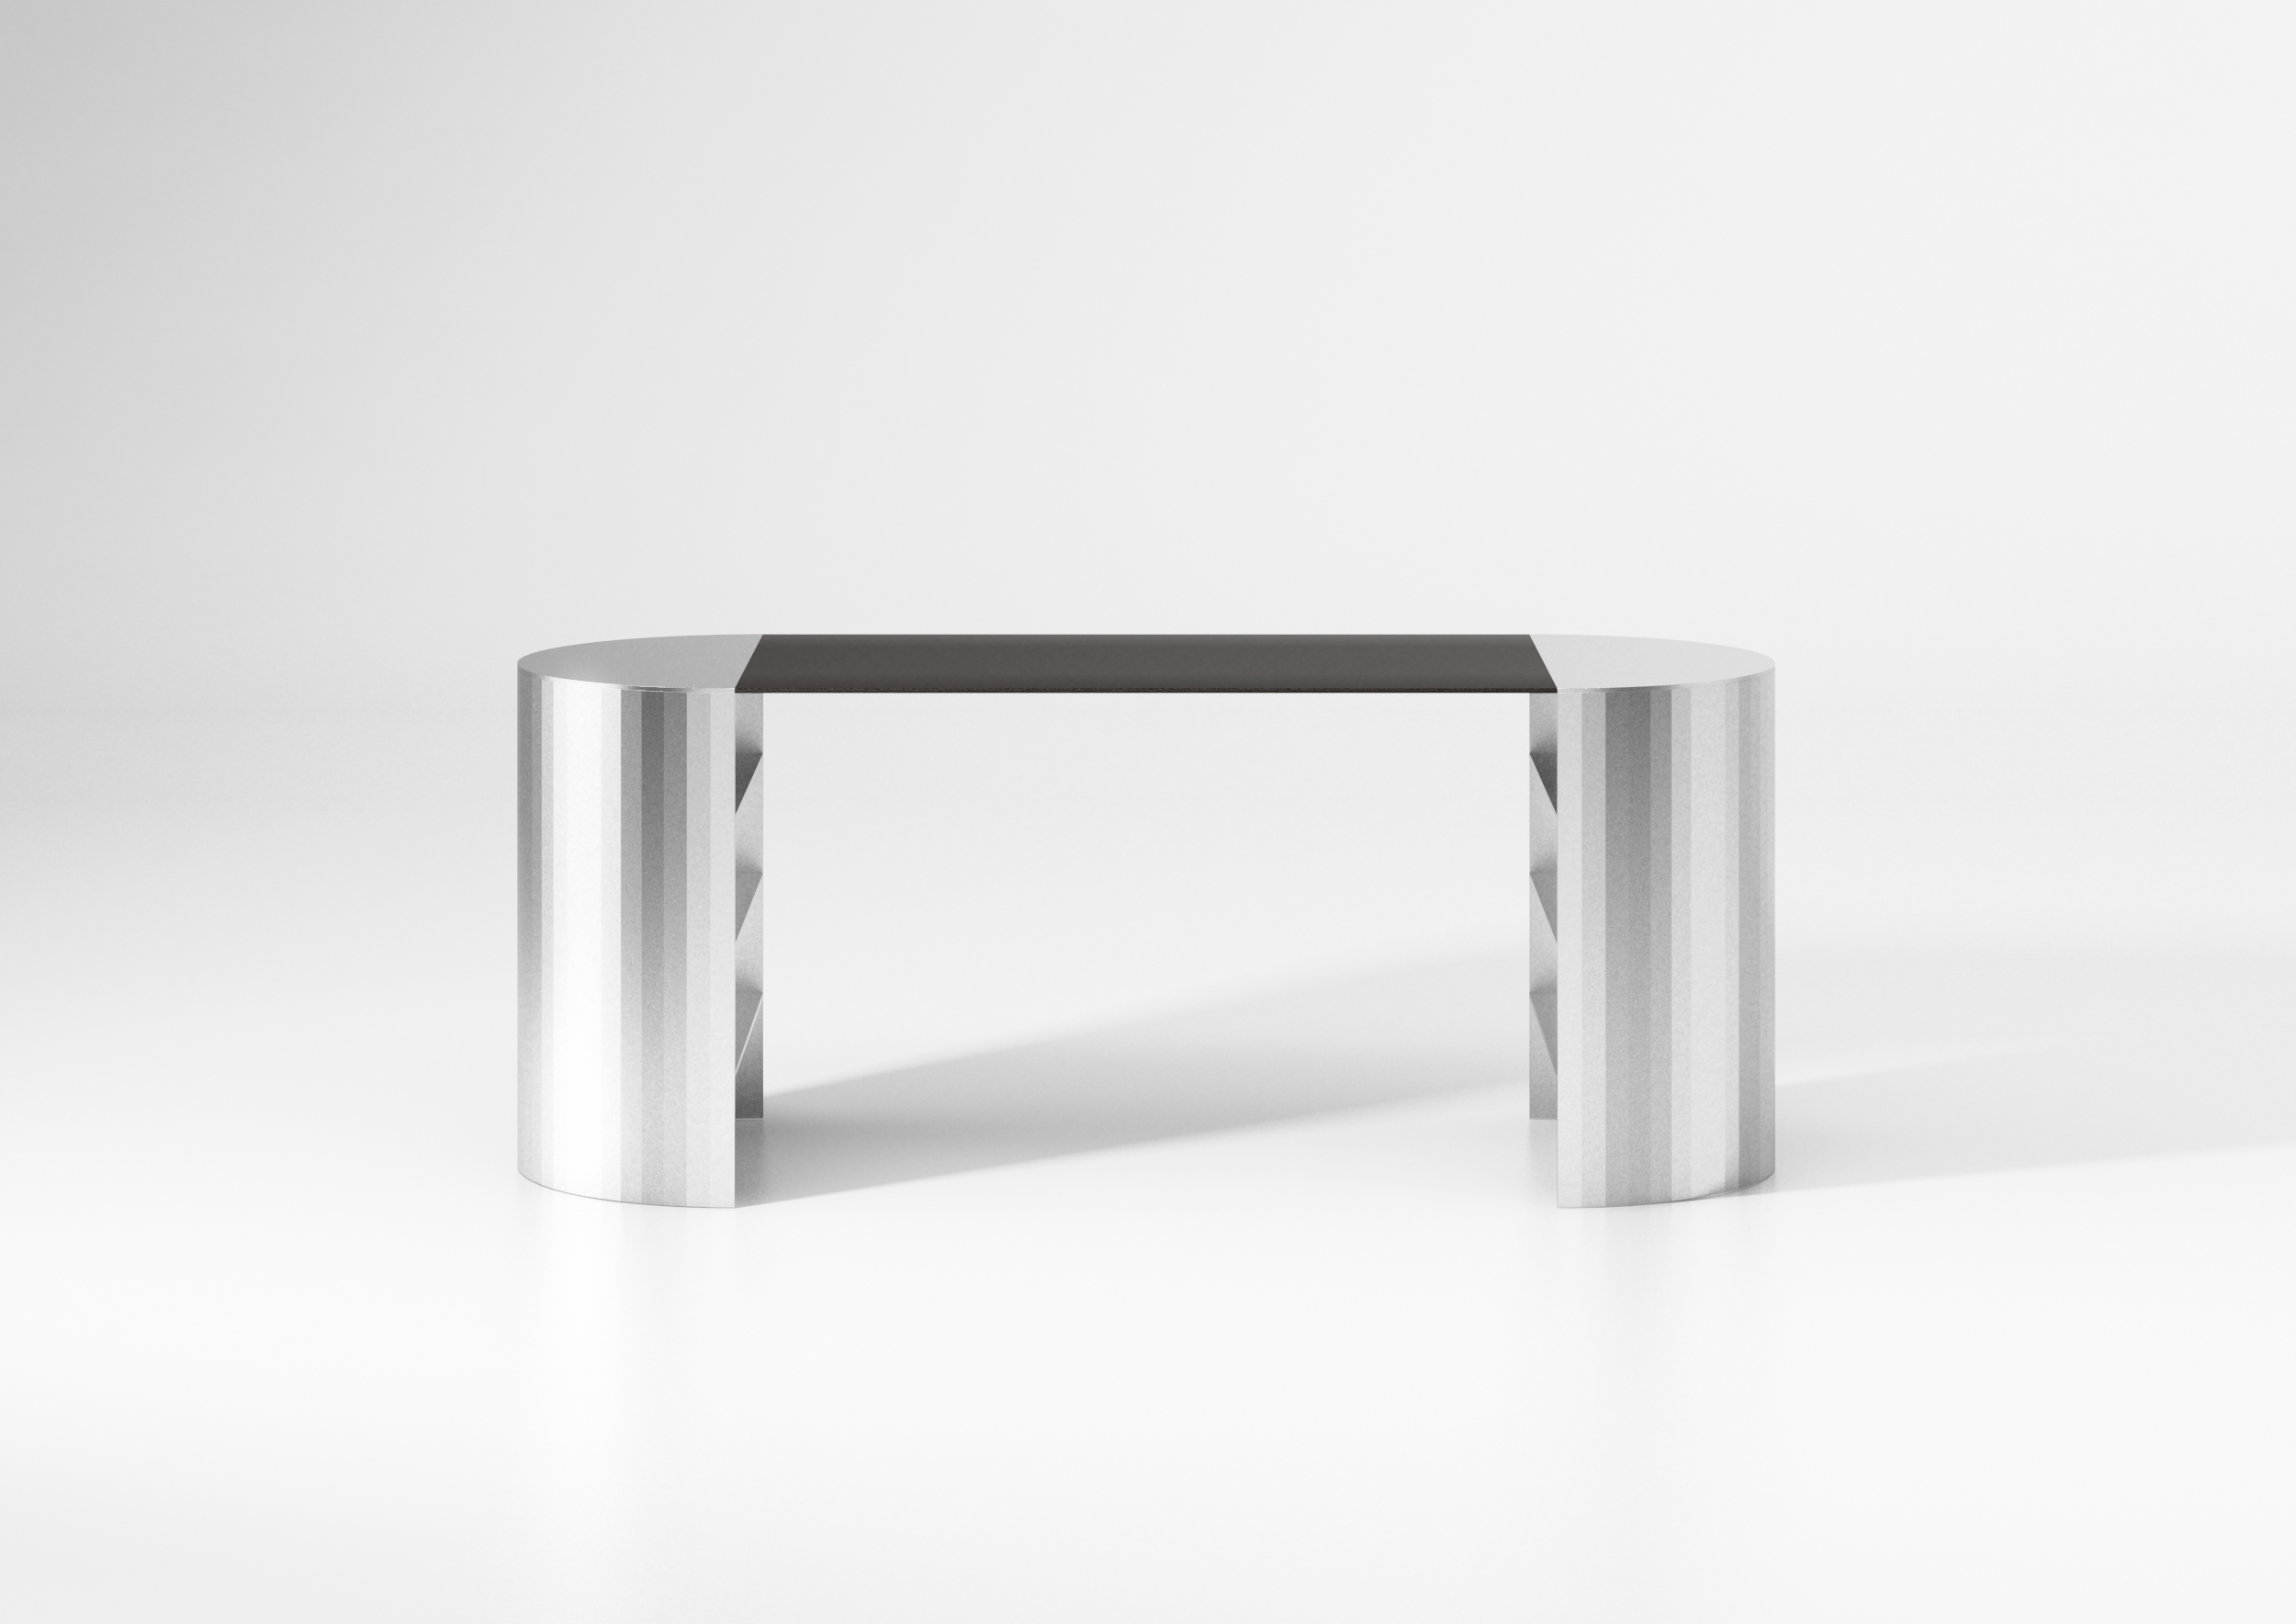 On the occasion of Maison&Objet and Paris Déco Off 2019, designer POOL Studio designed a raw metal desk.